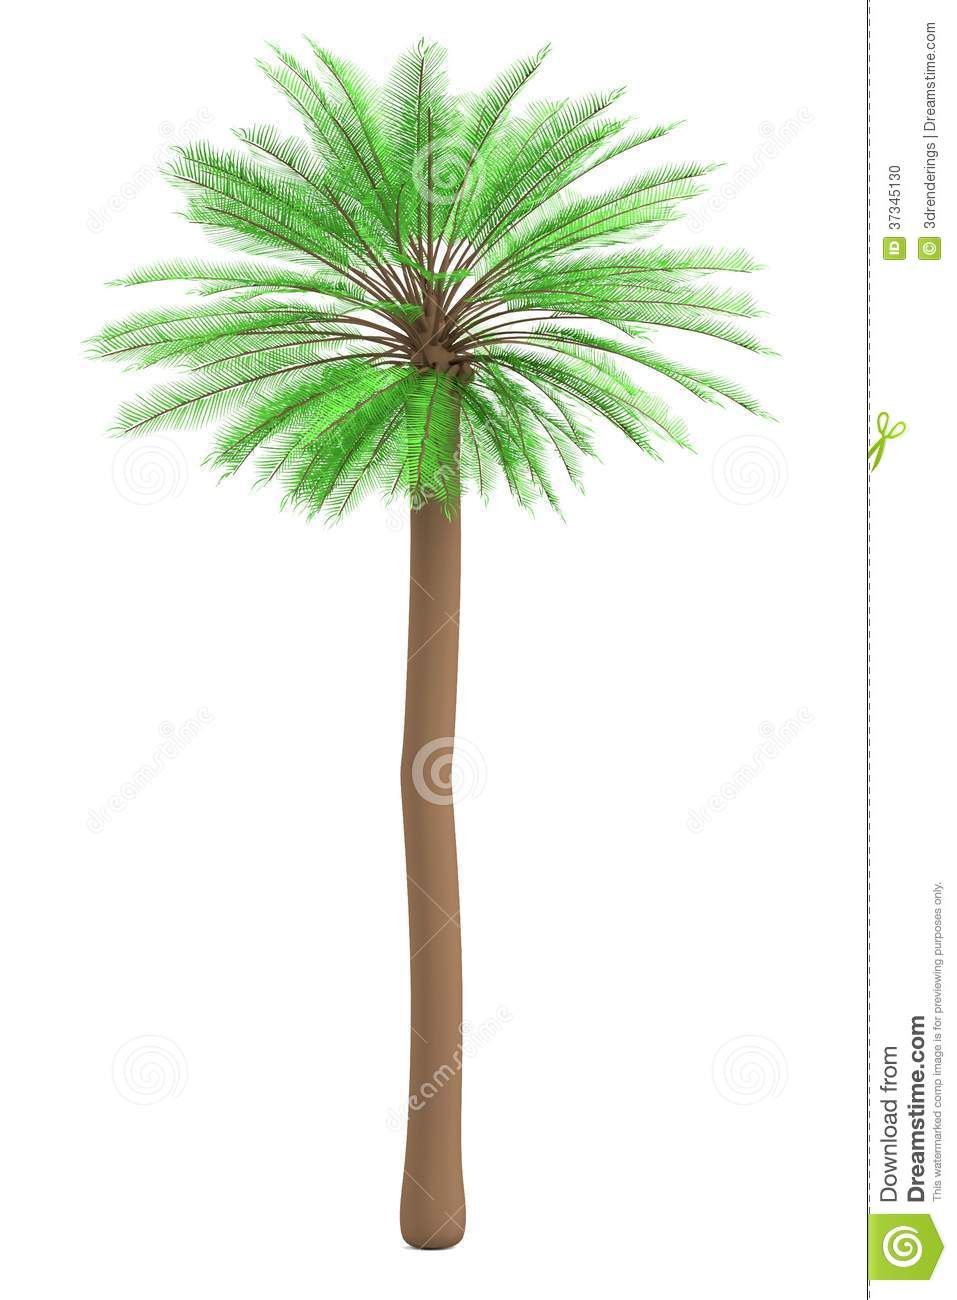 3d render of palm